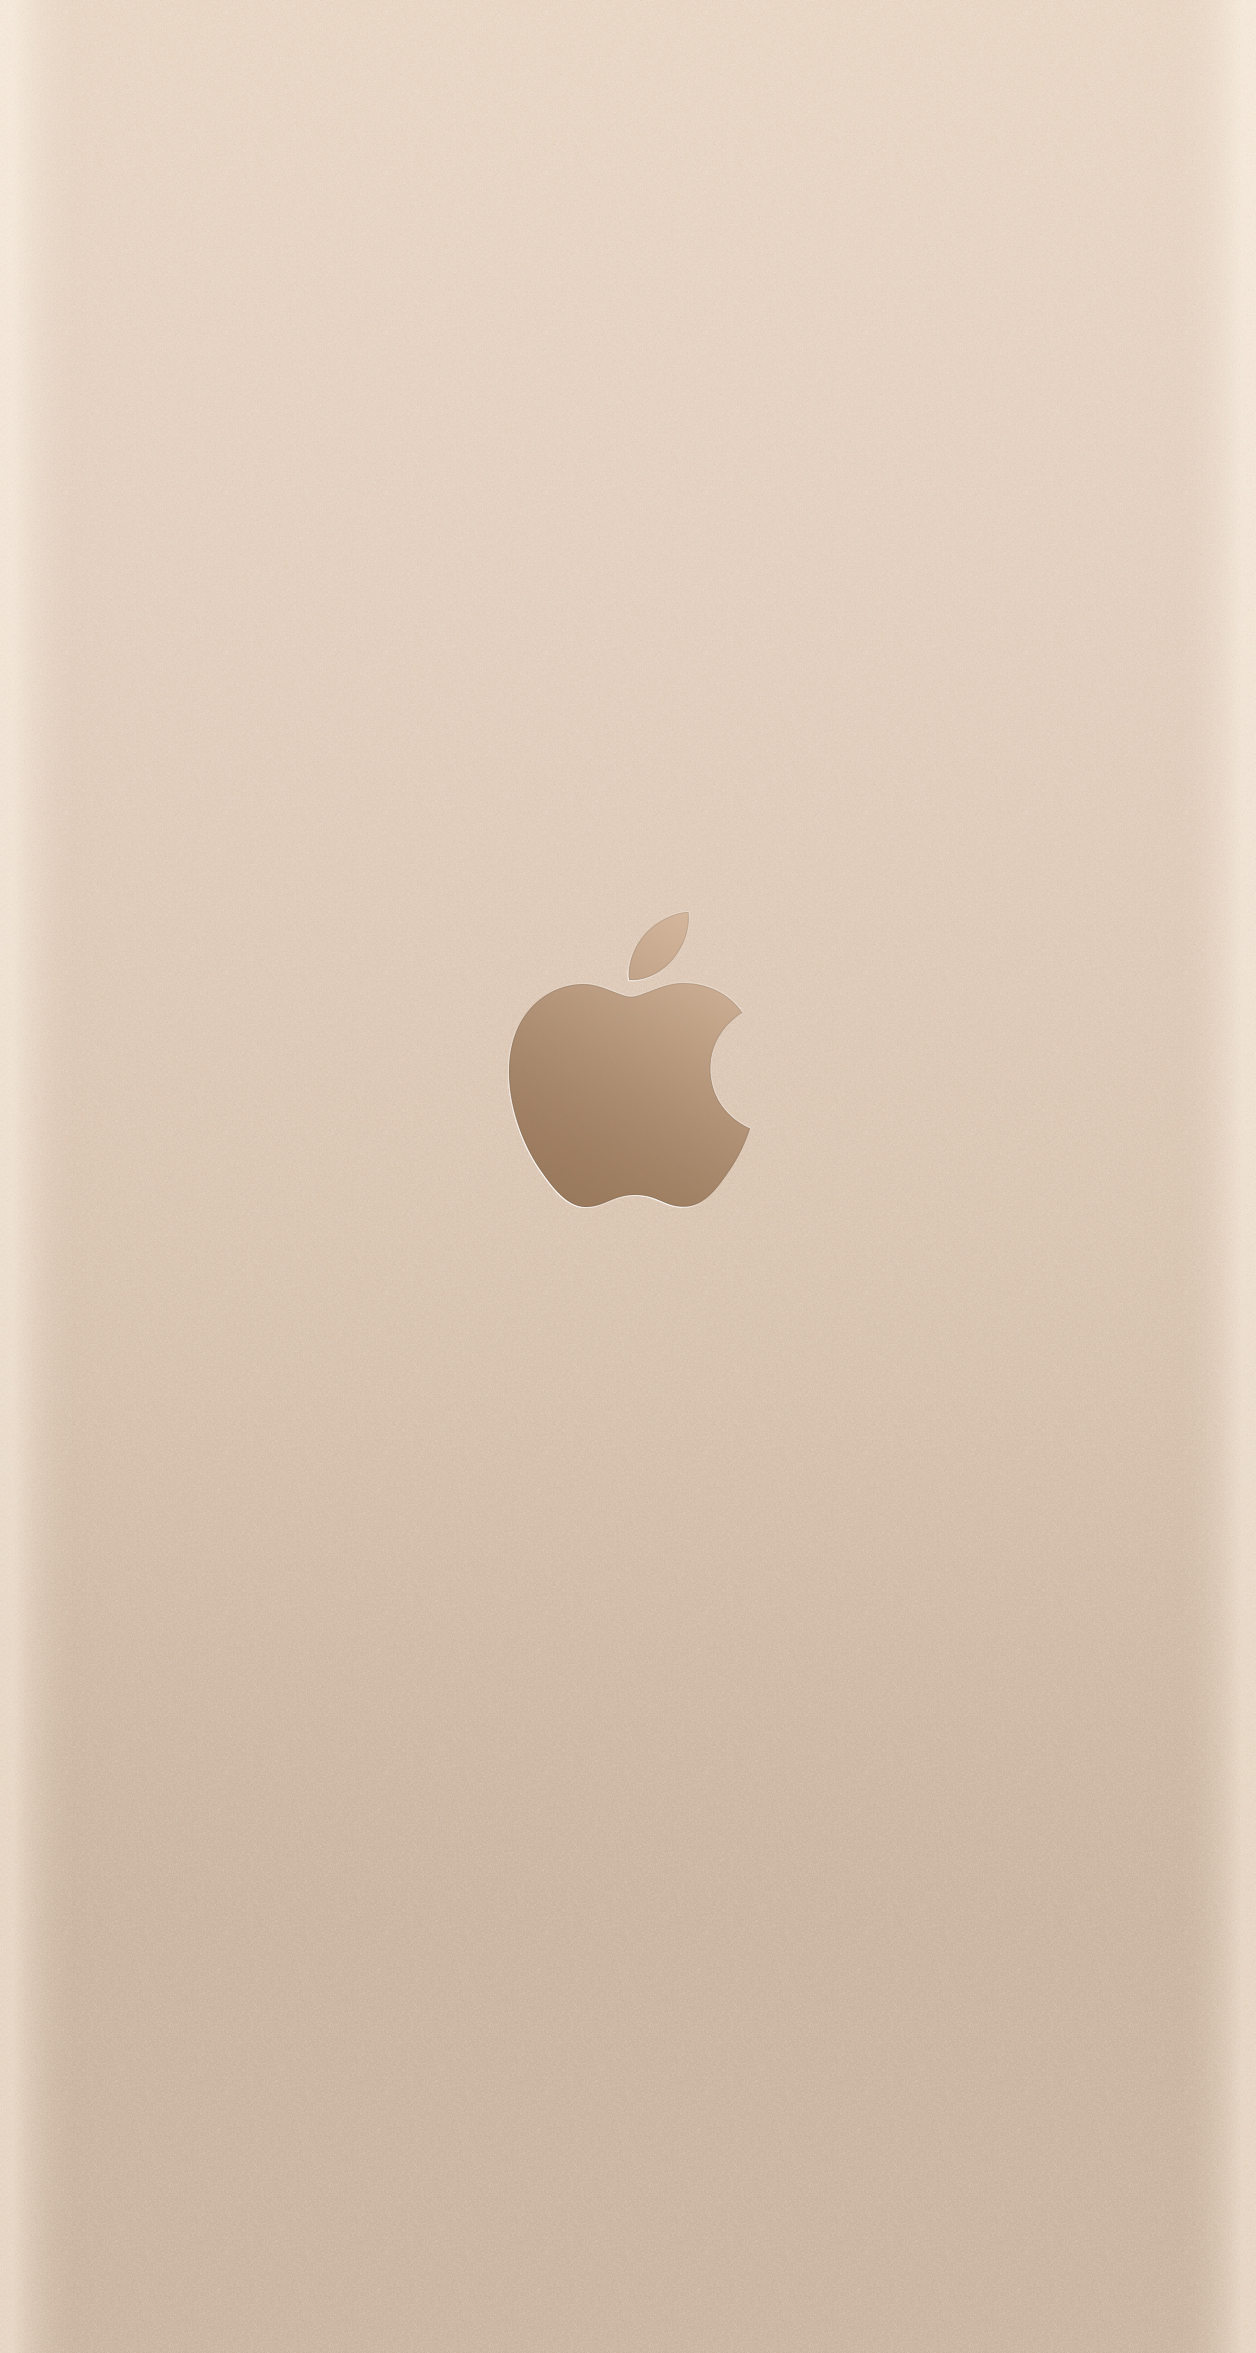 Apple Logo wallpaper for iPhone 6 and iPhone 6 Plus 1256x2353